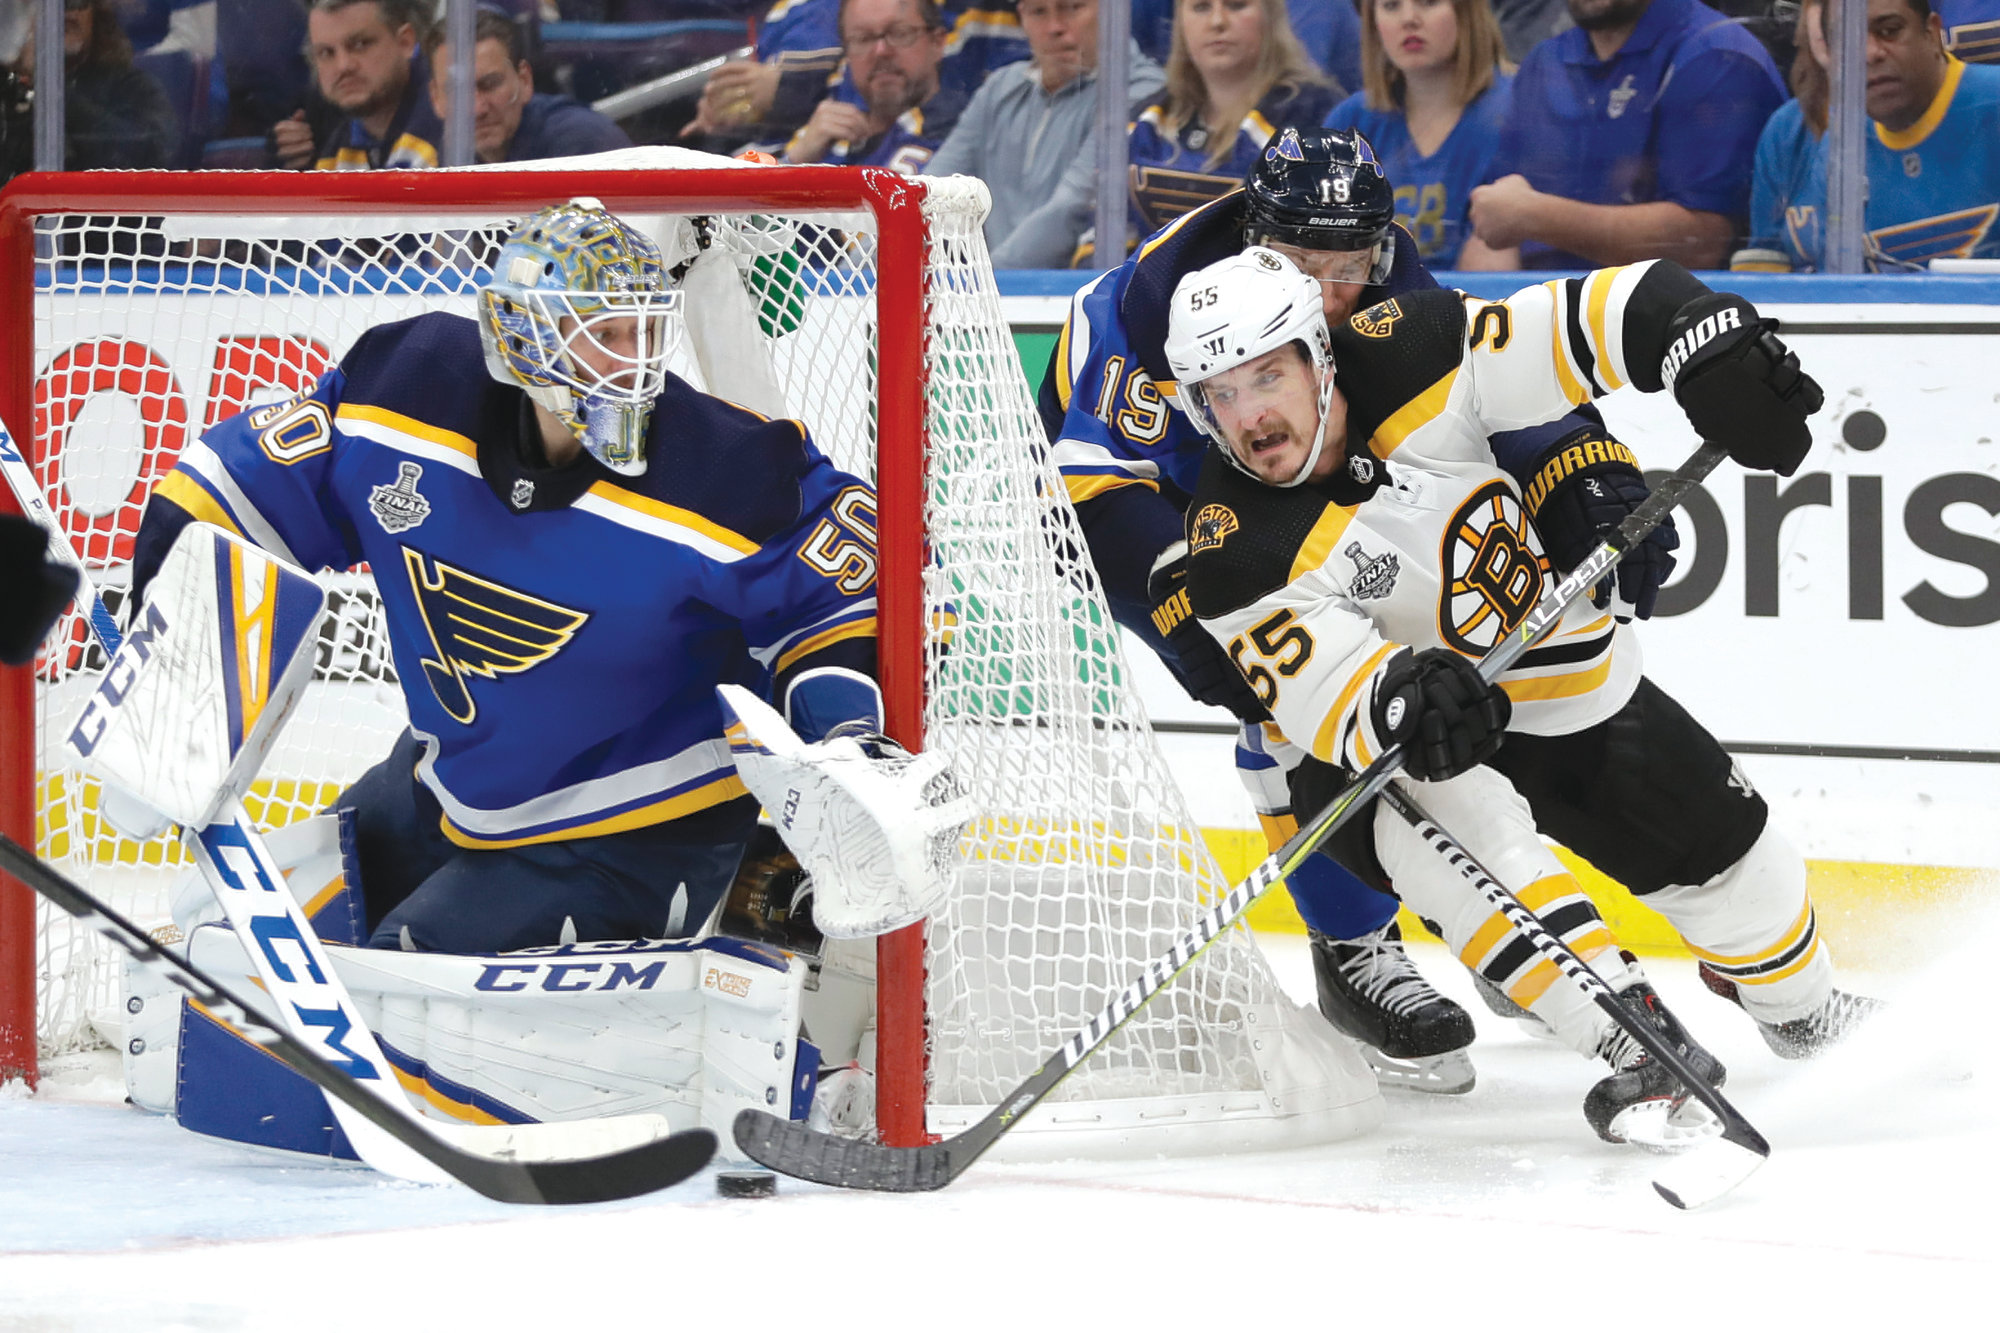 Boston Bruins center Noel Acciari (55) rounds the net against St. Louis Blues goaltender Jordan Binnington (50) during Game 6 of the NHL hockey Stanley Cup Final on Sunday in St. Louis. The Bruins won 5-1 to even the series 3-3.